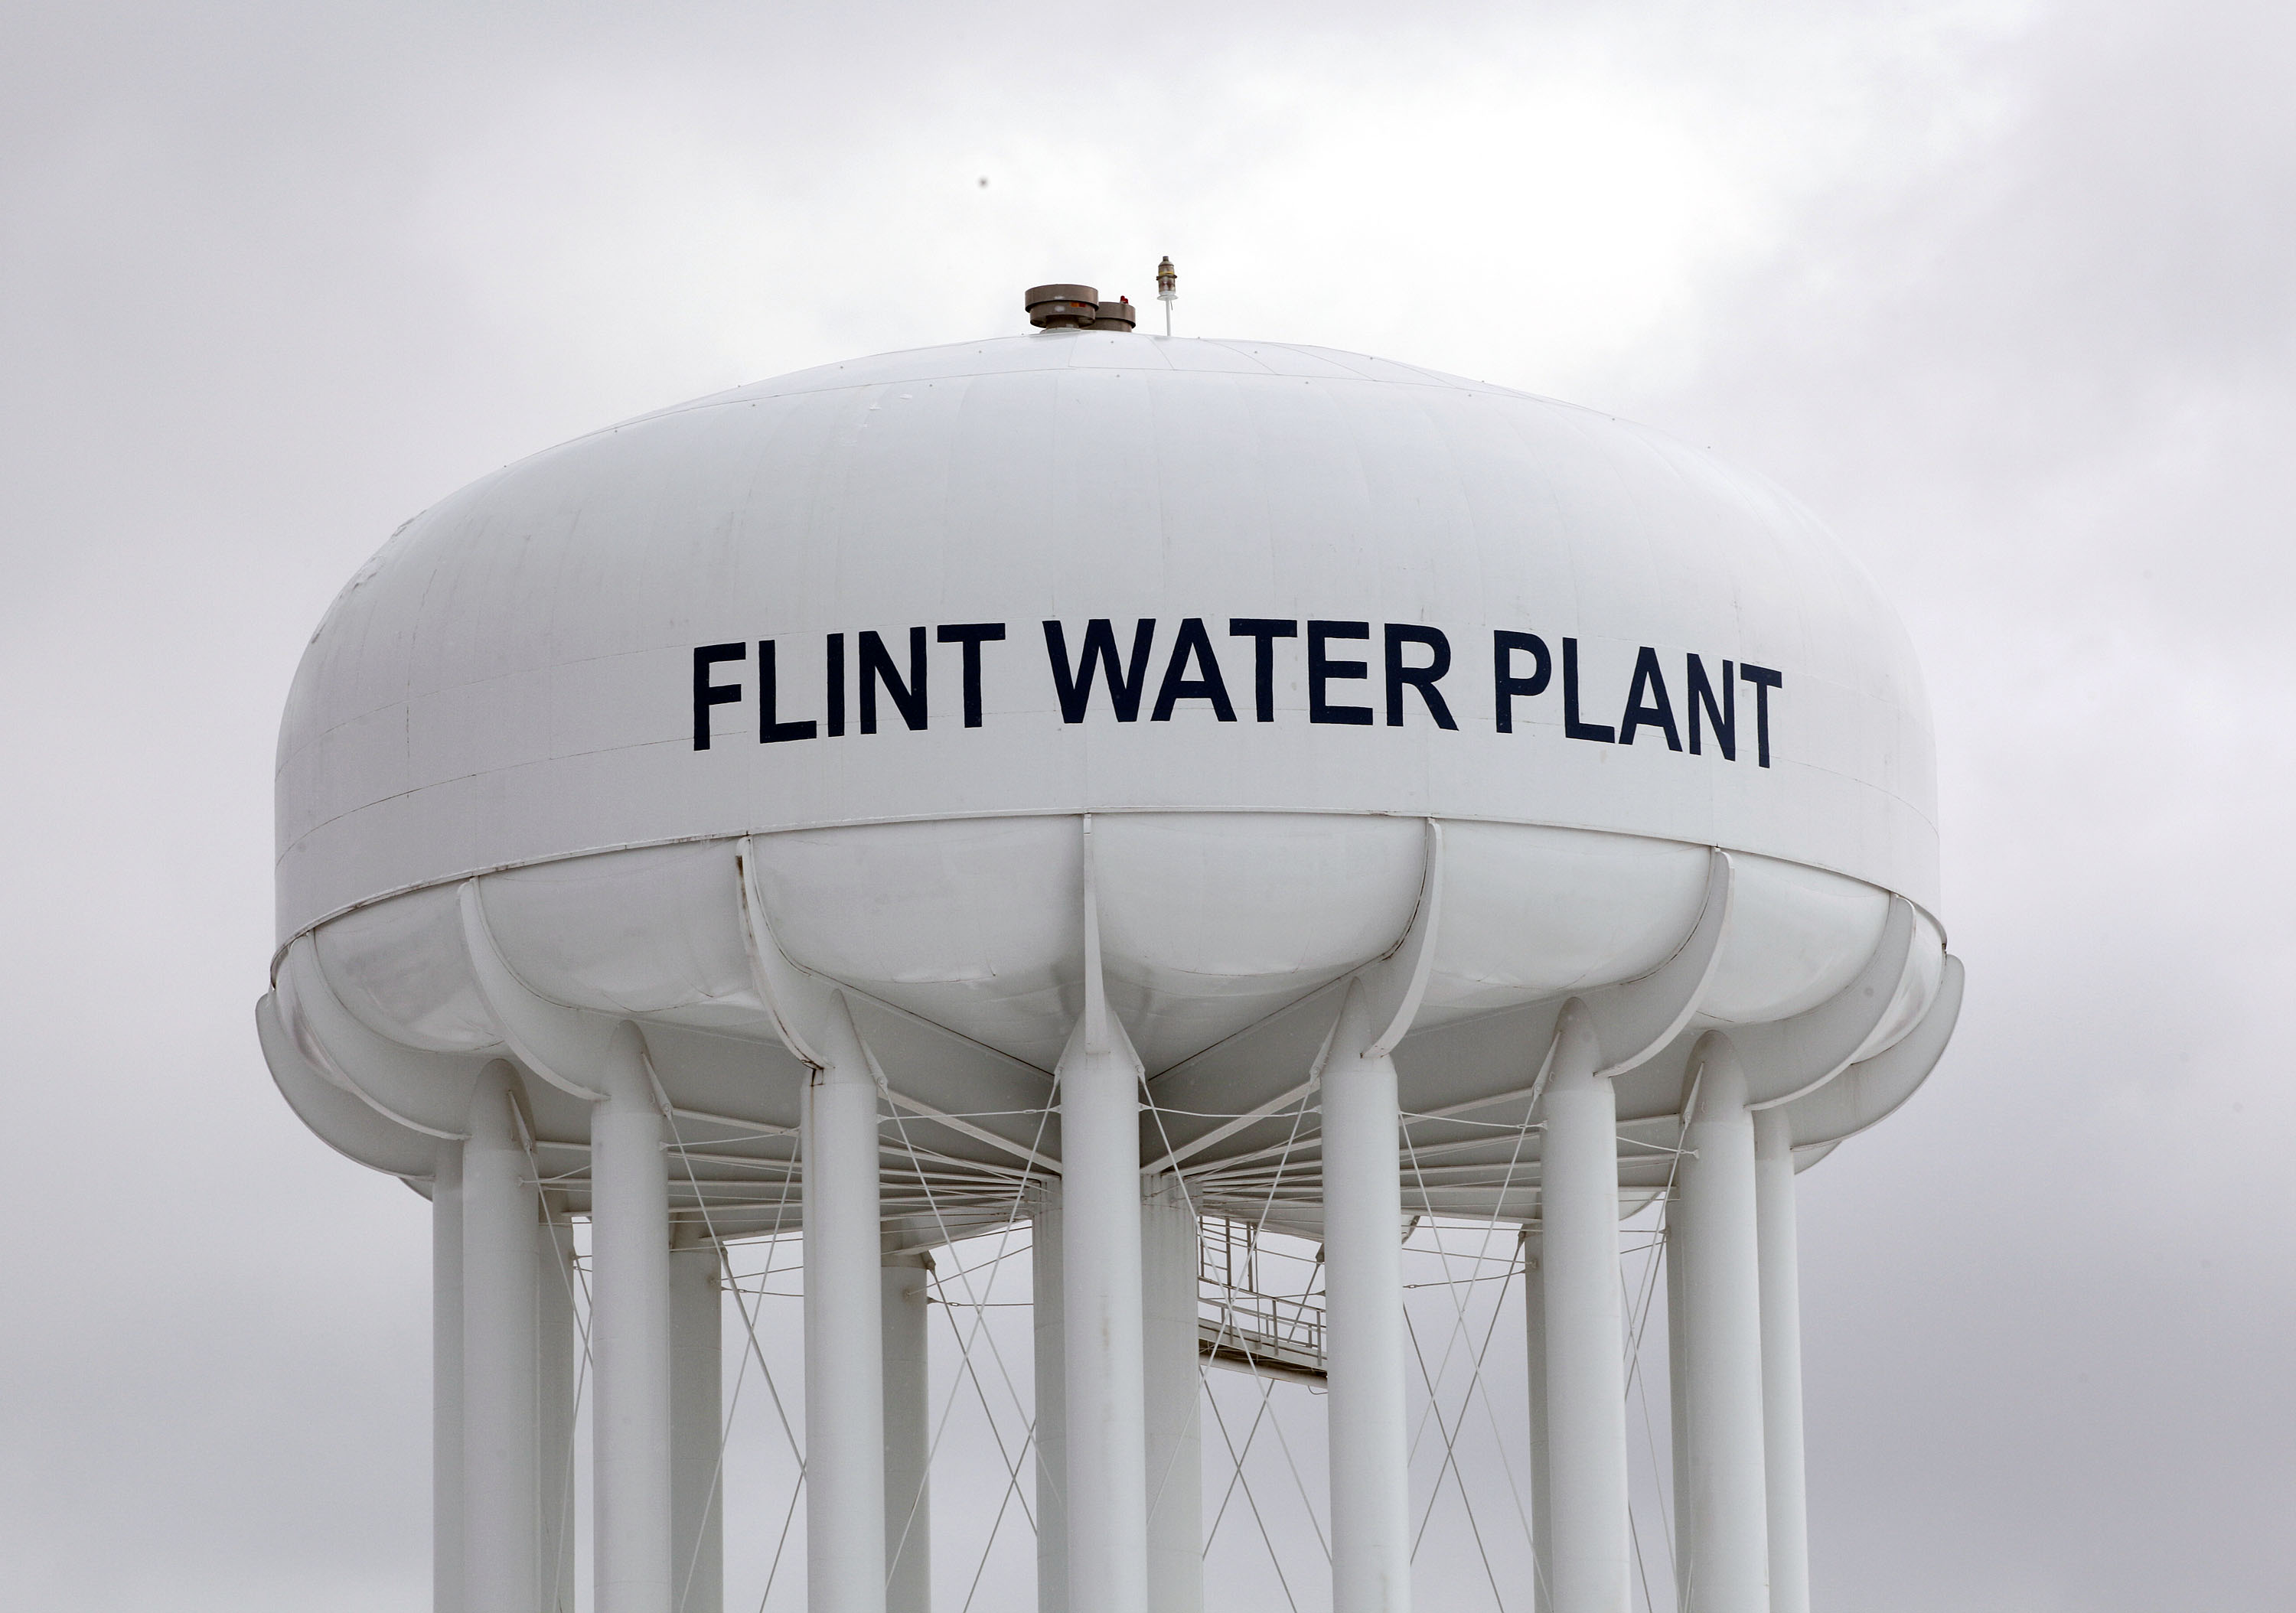 Michigan National Guard To Help Flint With Lead Contamination In Water Supply